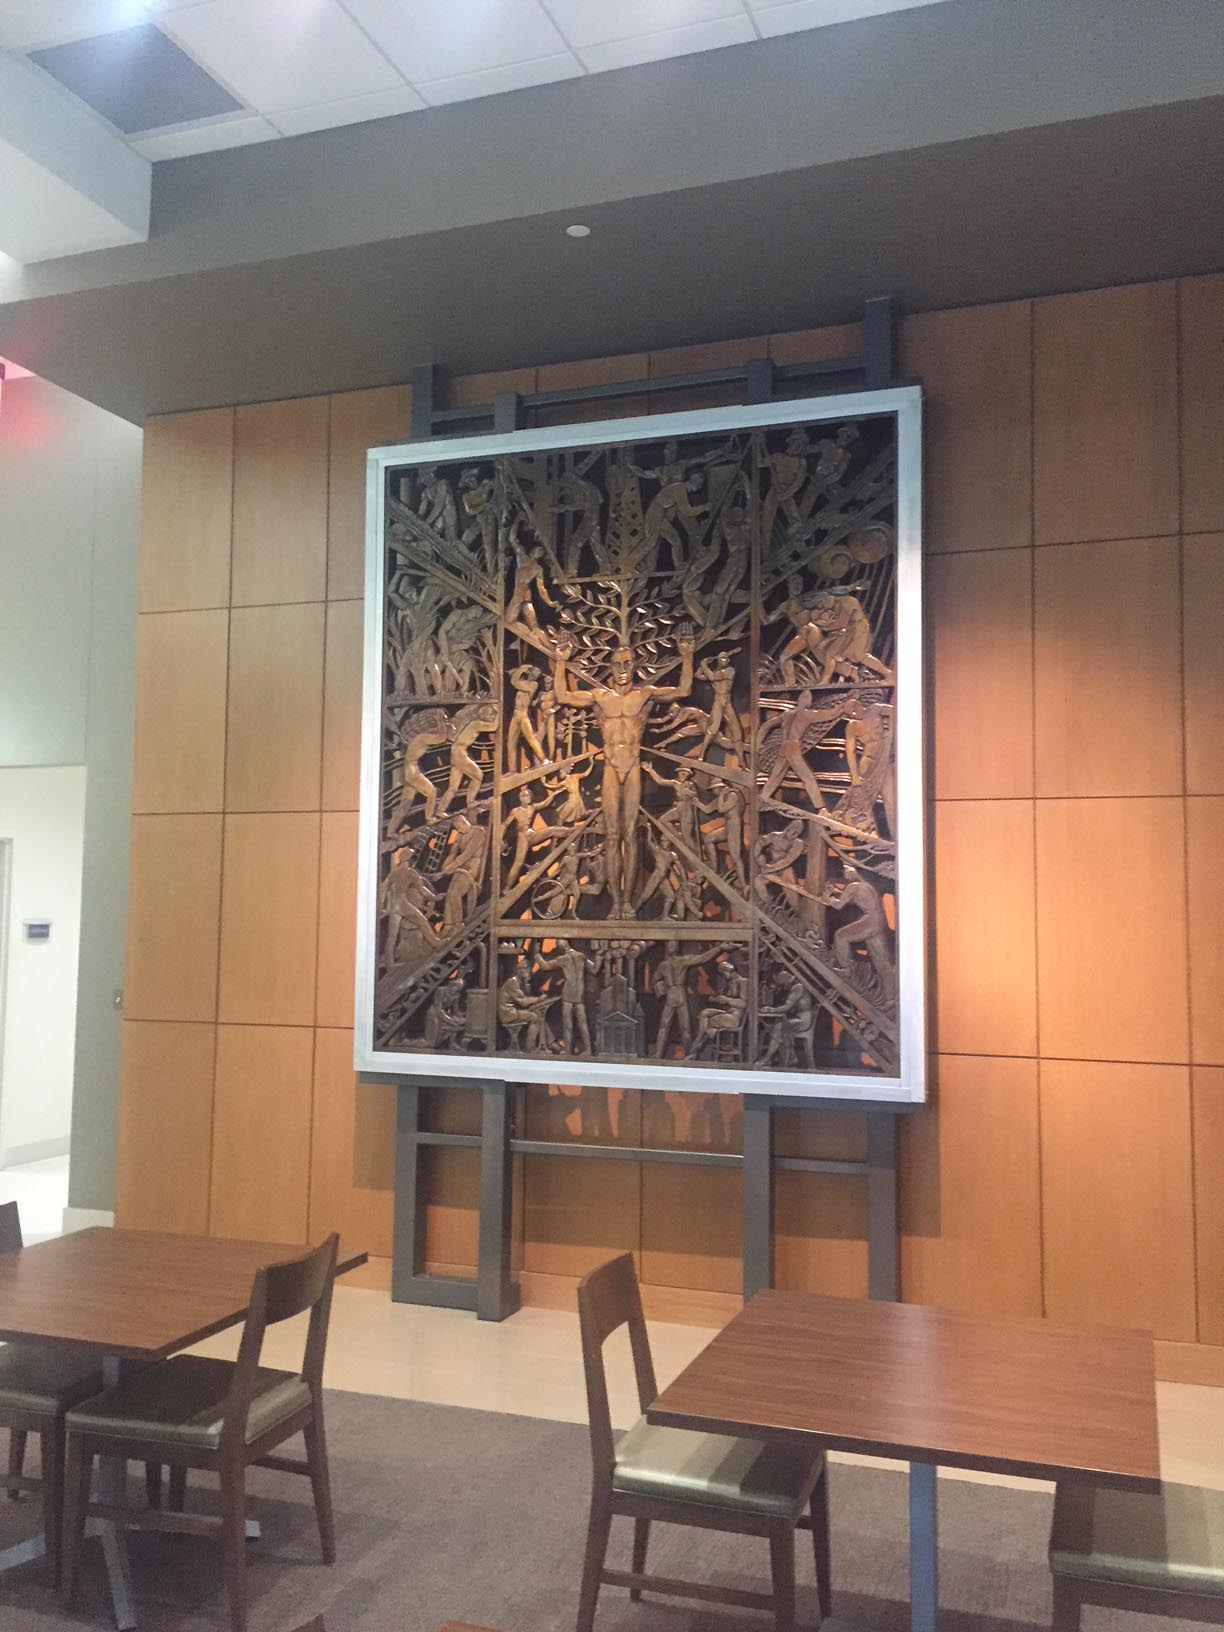 Louisiana at Work and Play: Bronze Reproduction of Enrique Alferez Sculpture